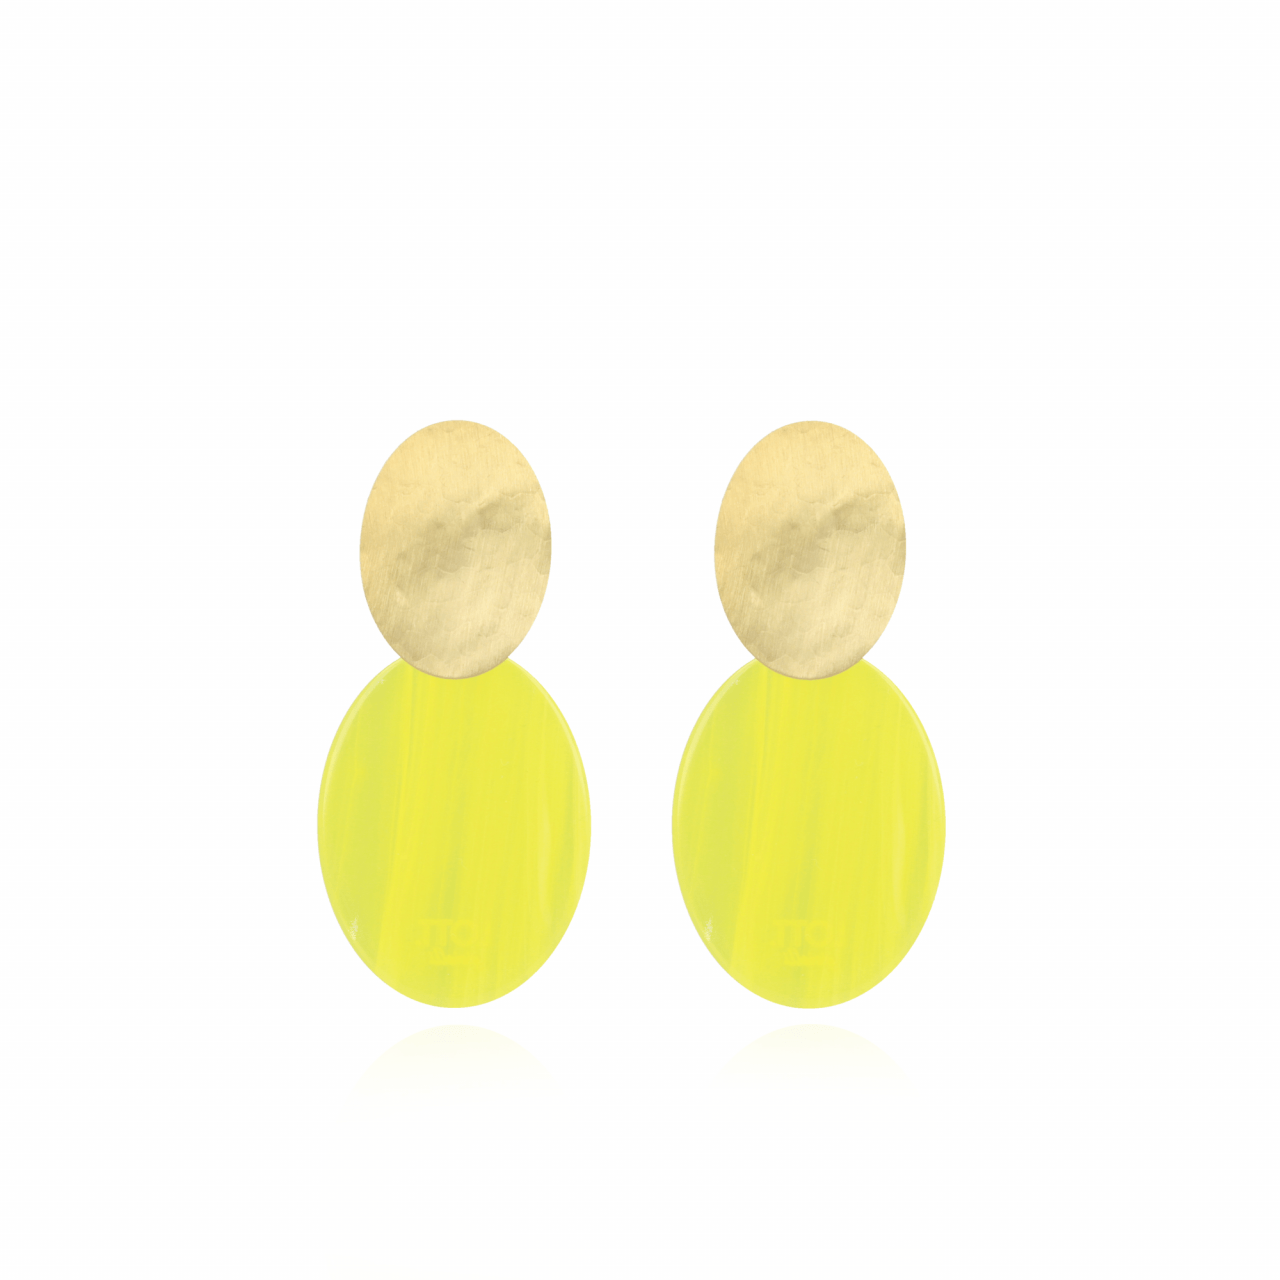 Resin closed oval s sparkling yellow earrings